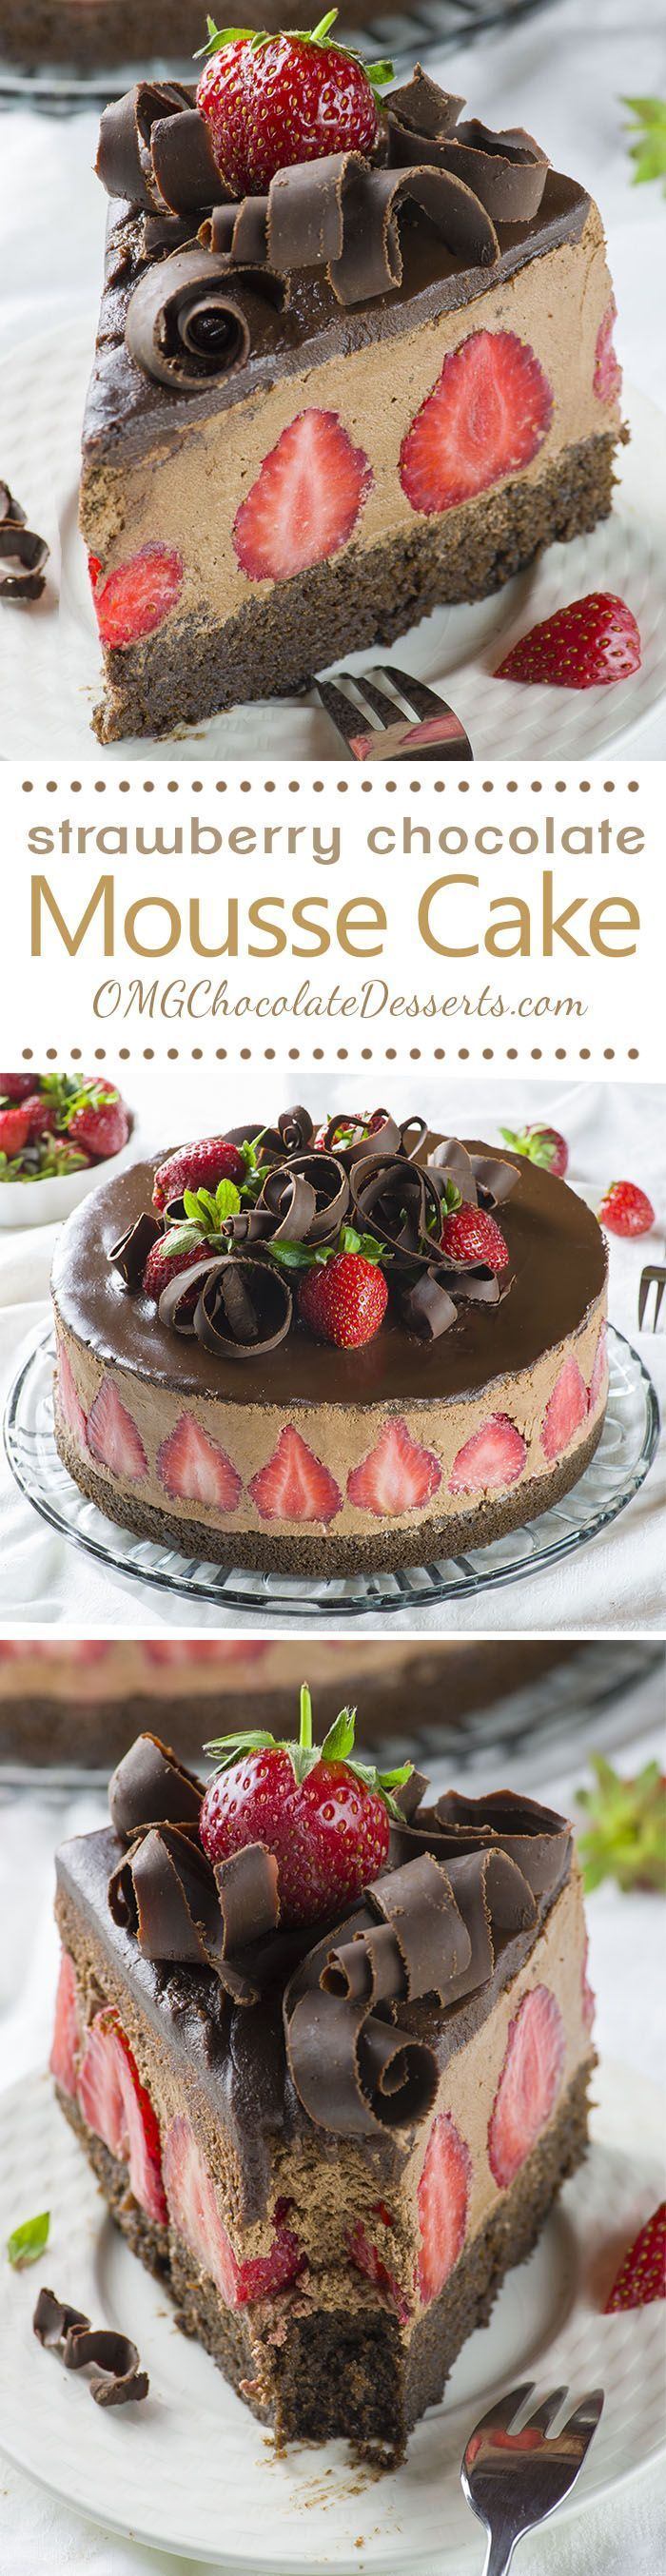 Strawberry Chocolate Cake is like the best chocolate covered strawberries youve ever eaten!!!